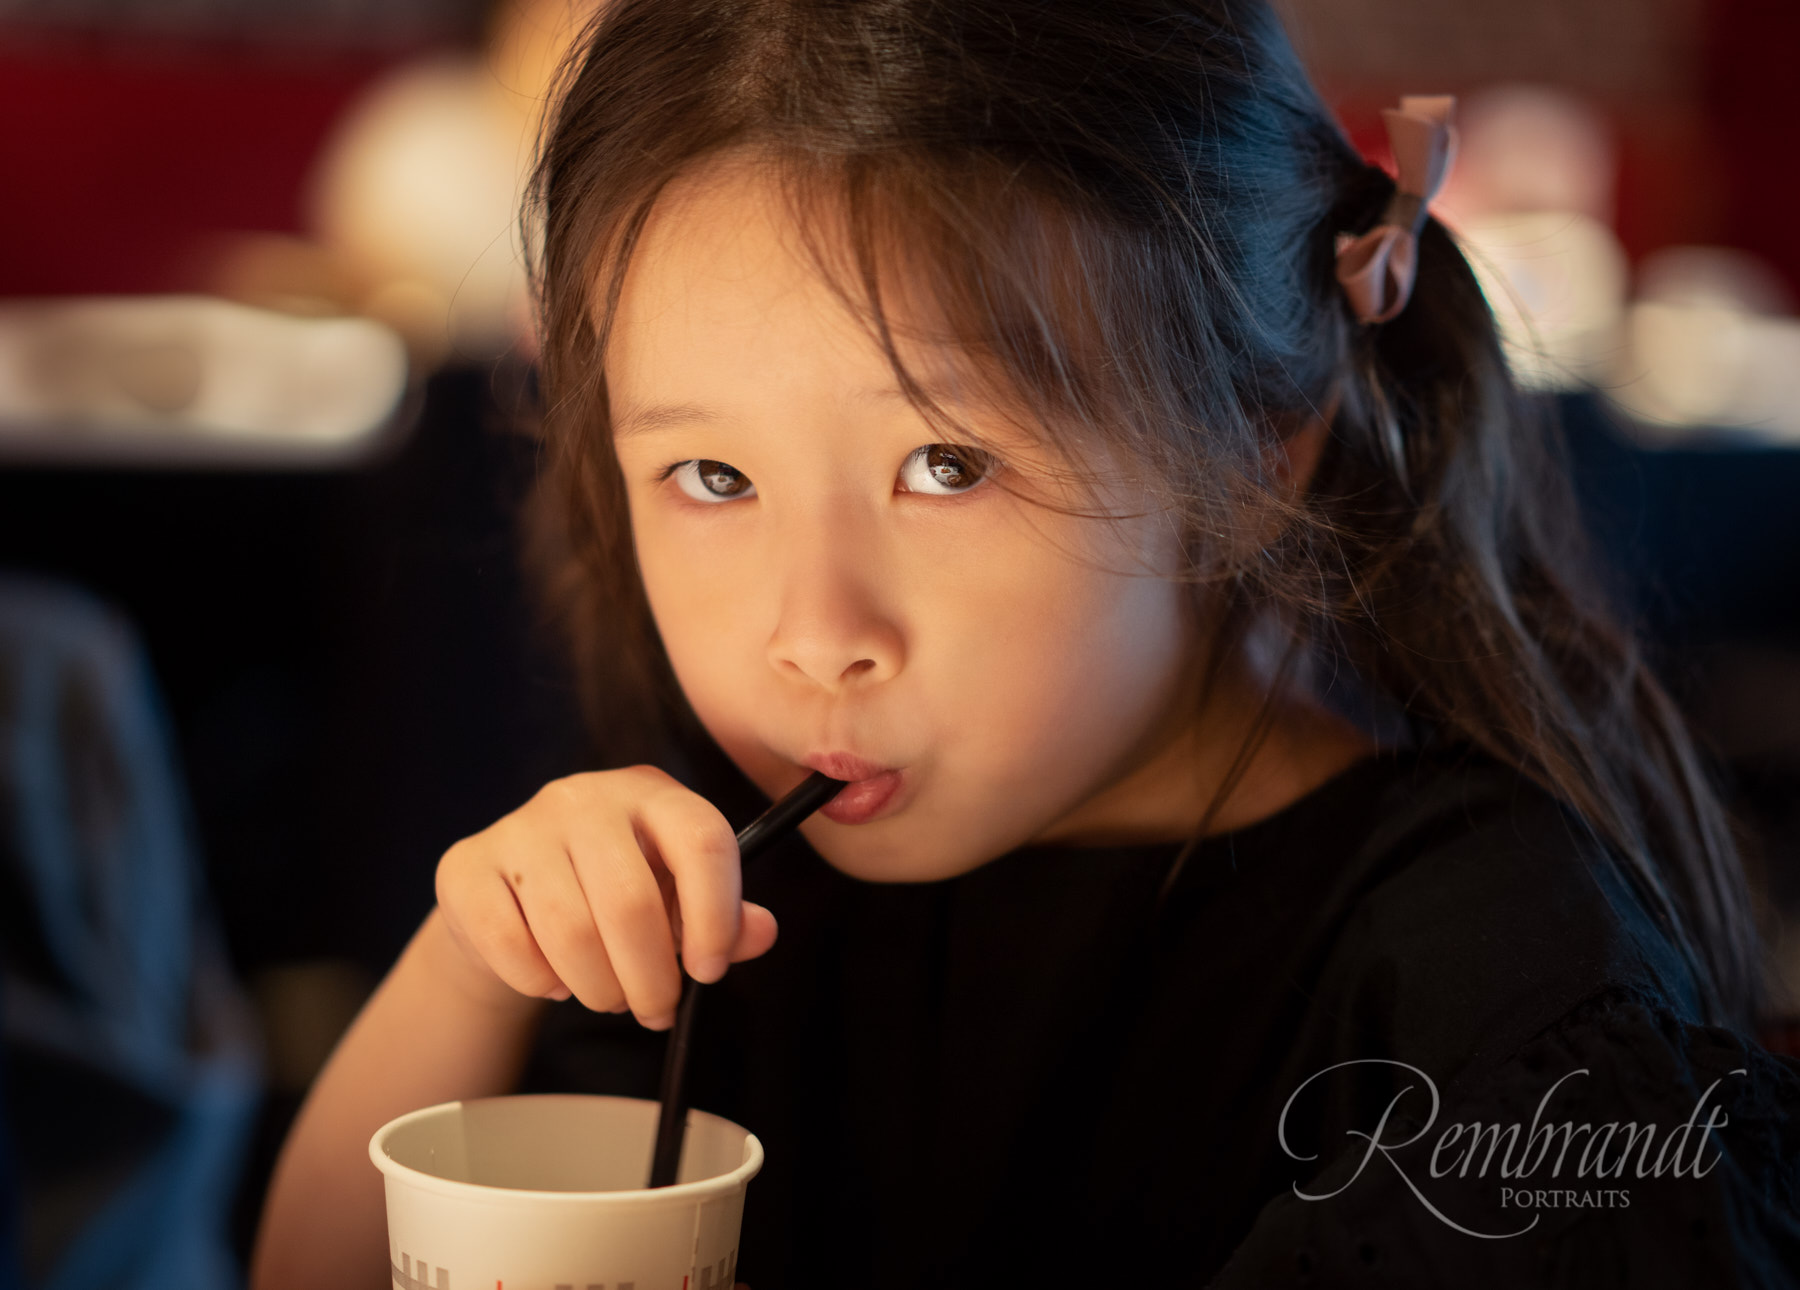 f/1.8 can help you get nice clean shots in low light environments such as restaurants.